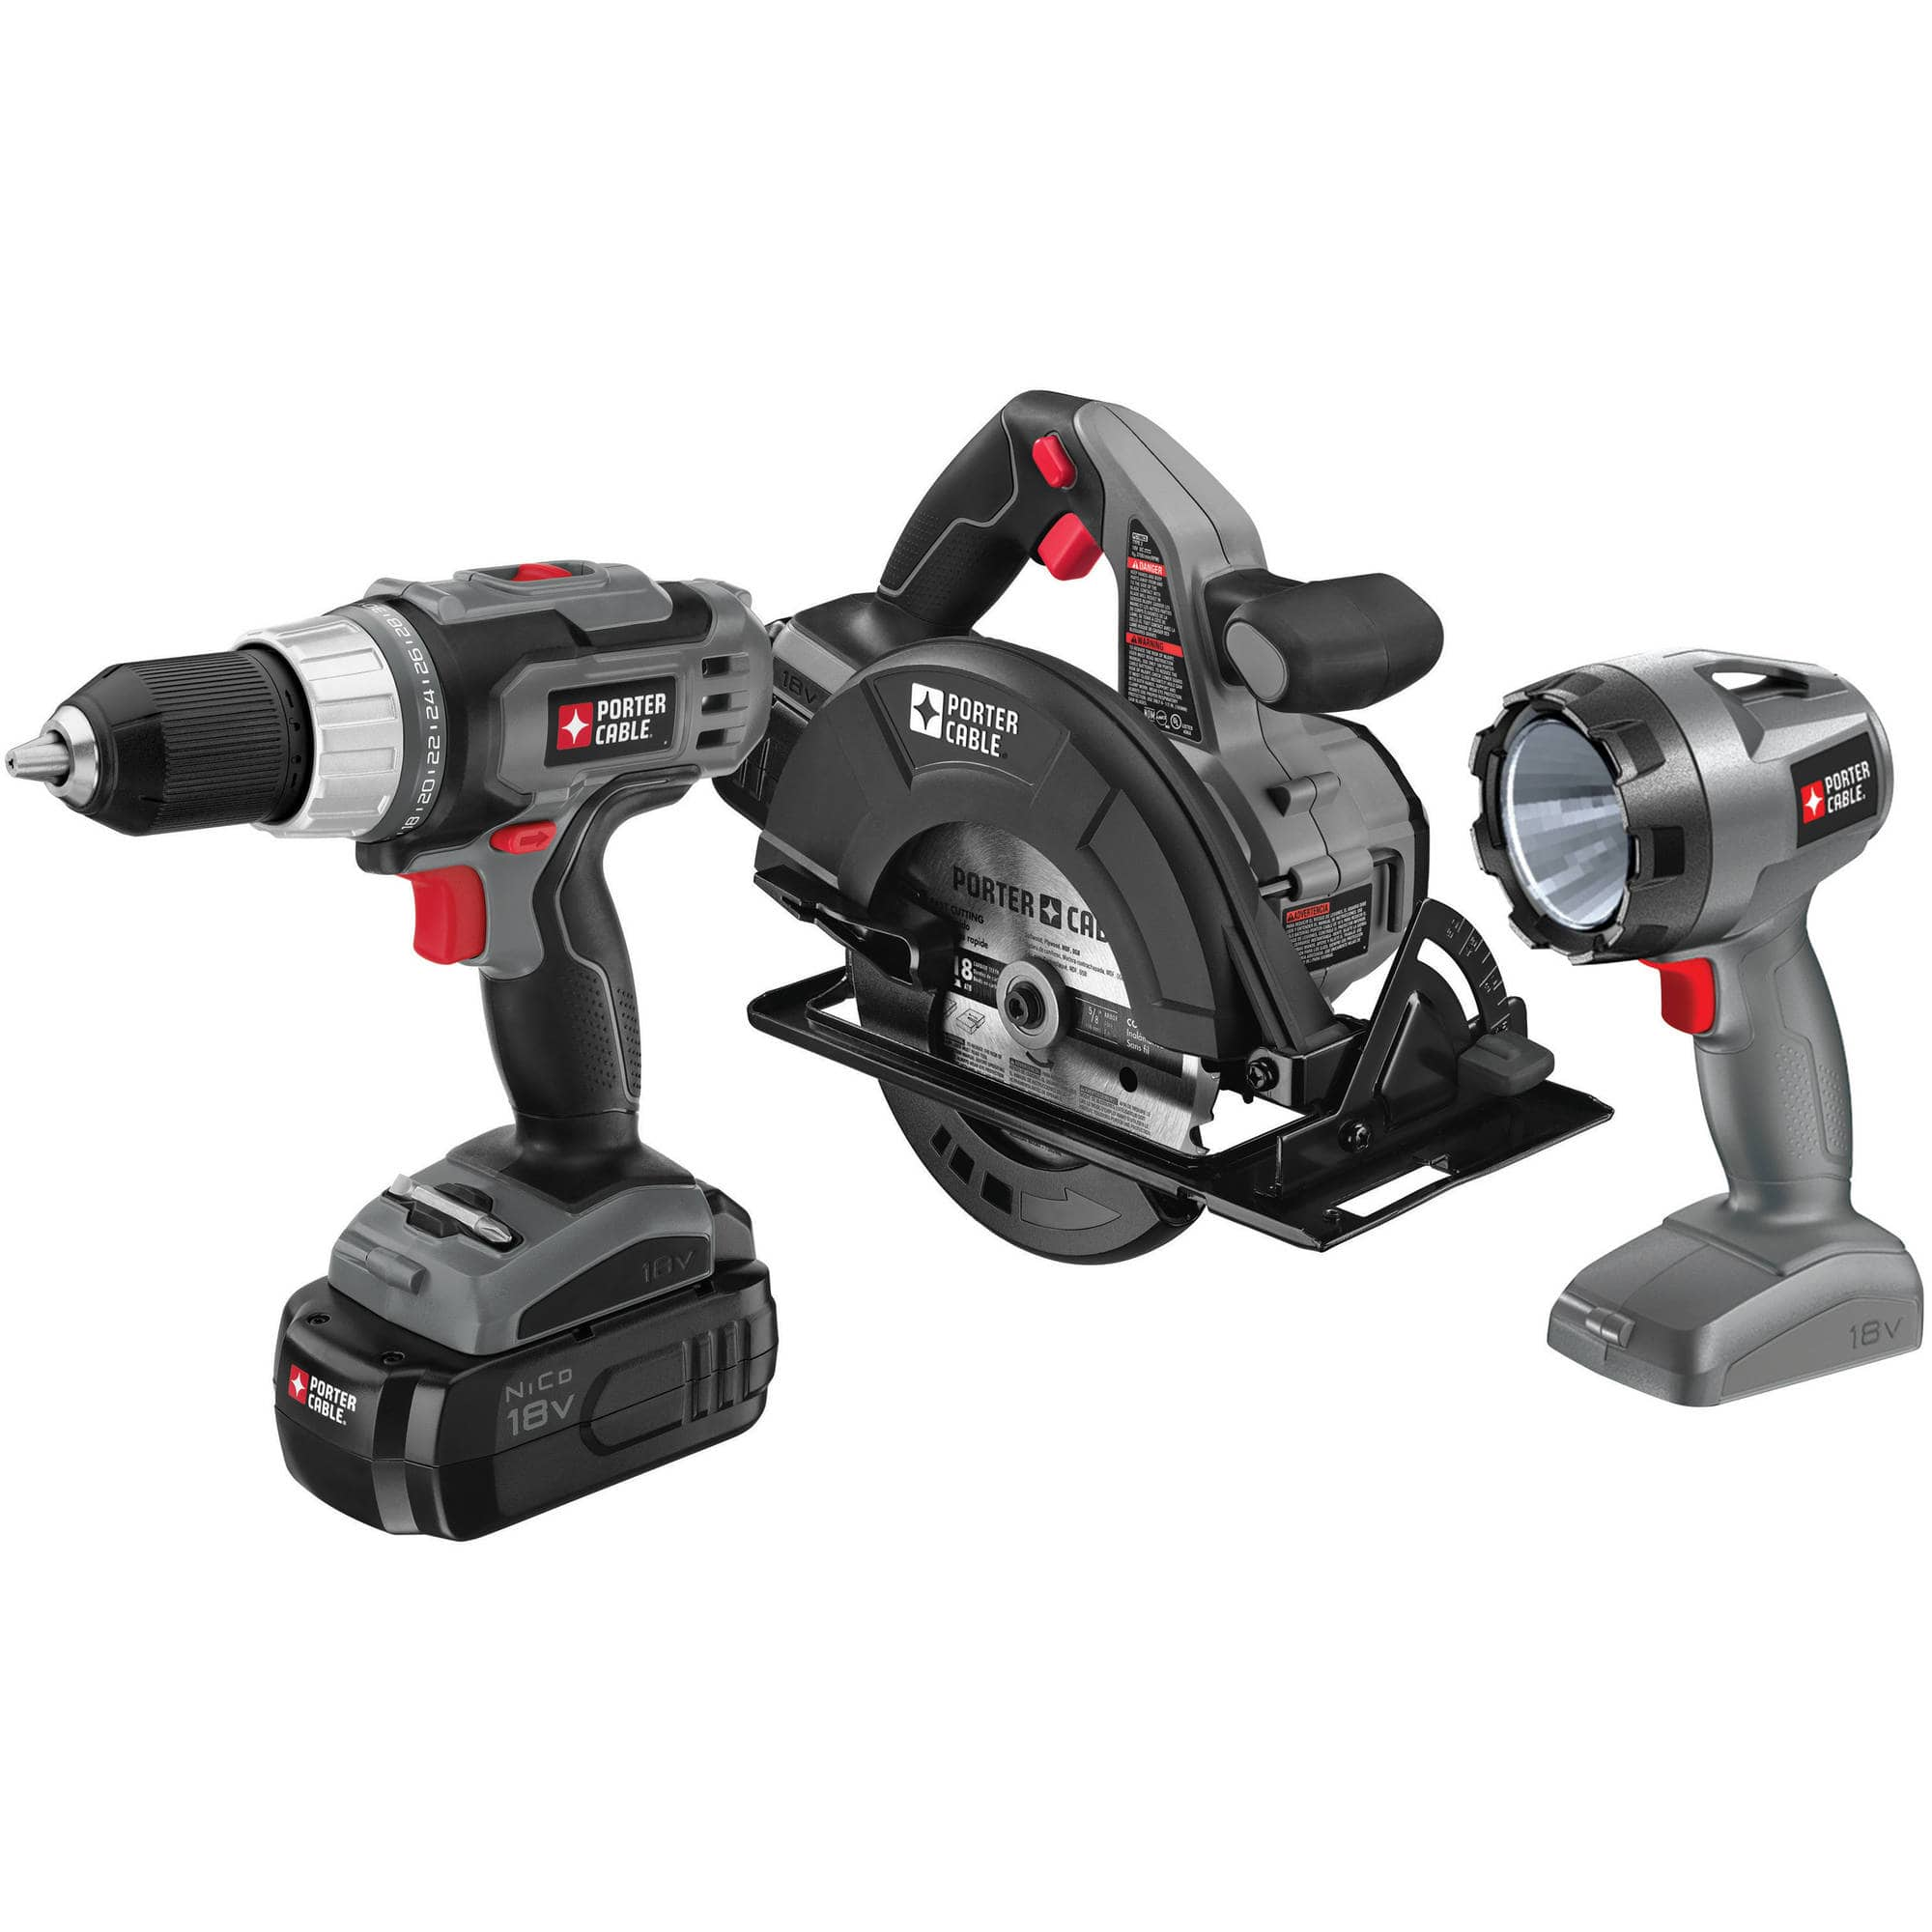 3-Piece Porter-Cable 18 Volt Ni-Cad Cordless Tool Combo Kit (Drill Driver/Circular Saw/Flashlight/Battery/Charger) $49 + Free Store Pickup Walmart.com